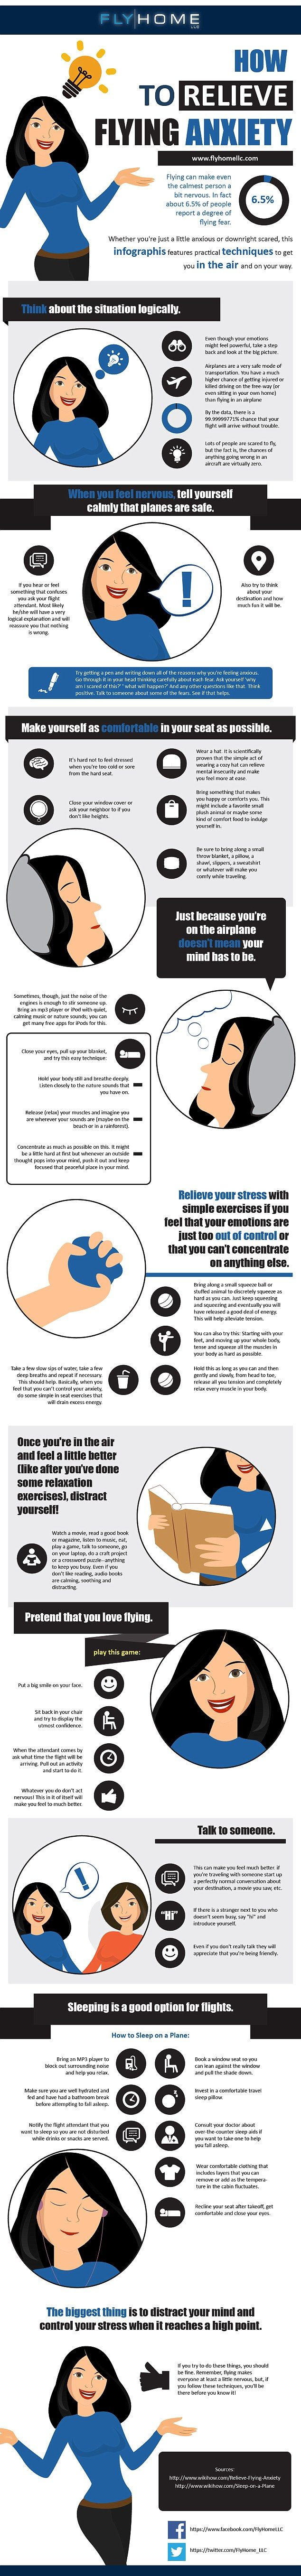 How to Get Over Your Flying Anxiety [Infographic]